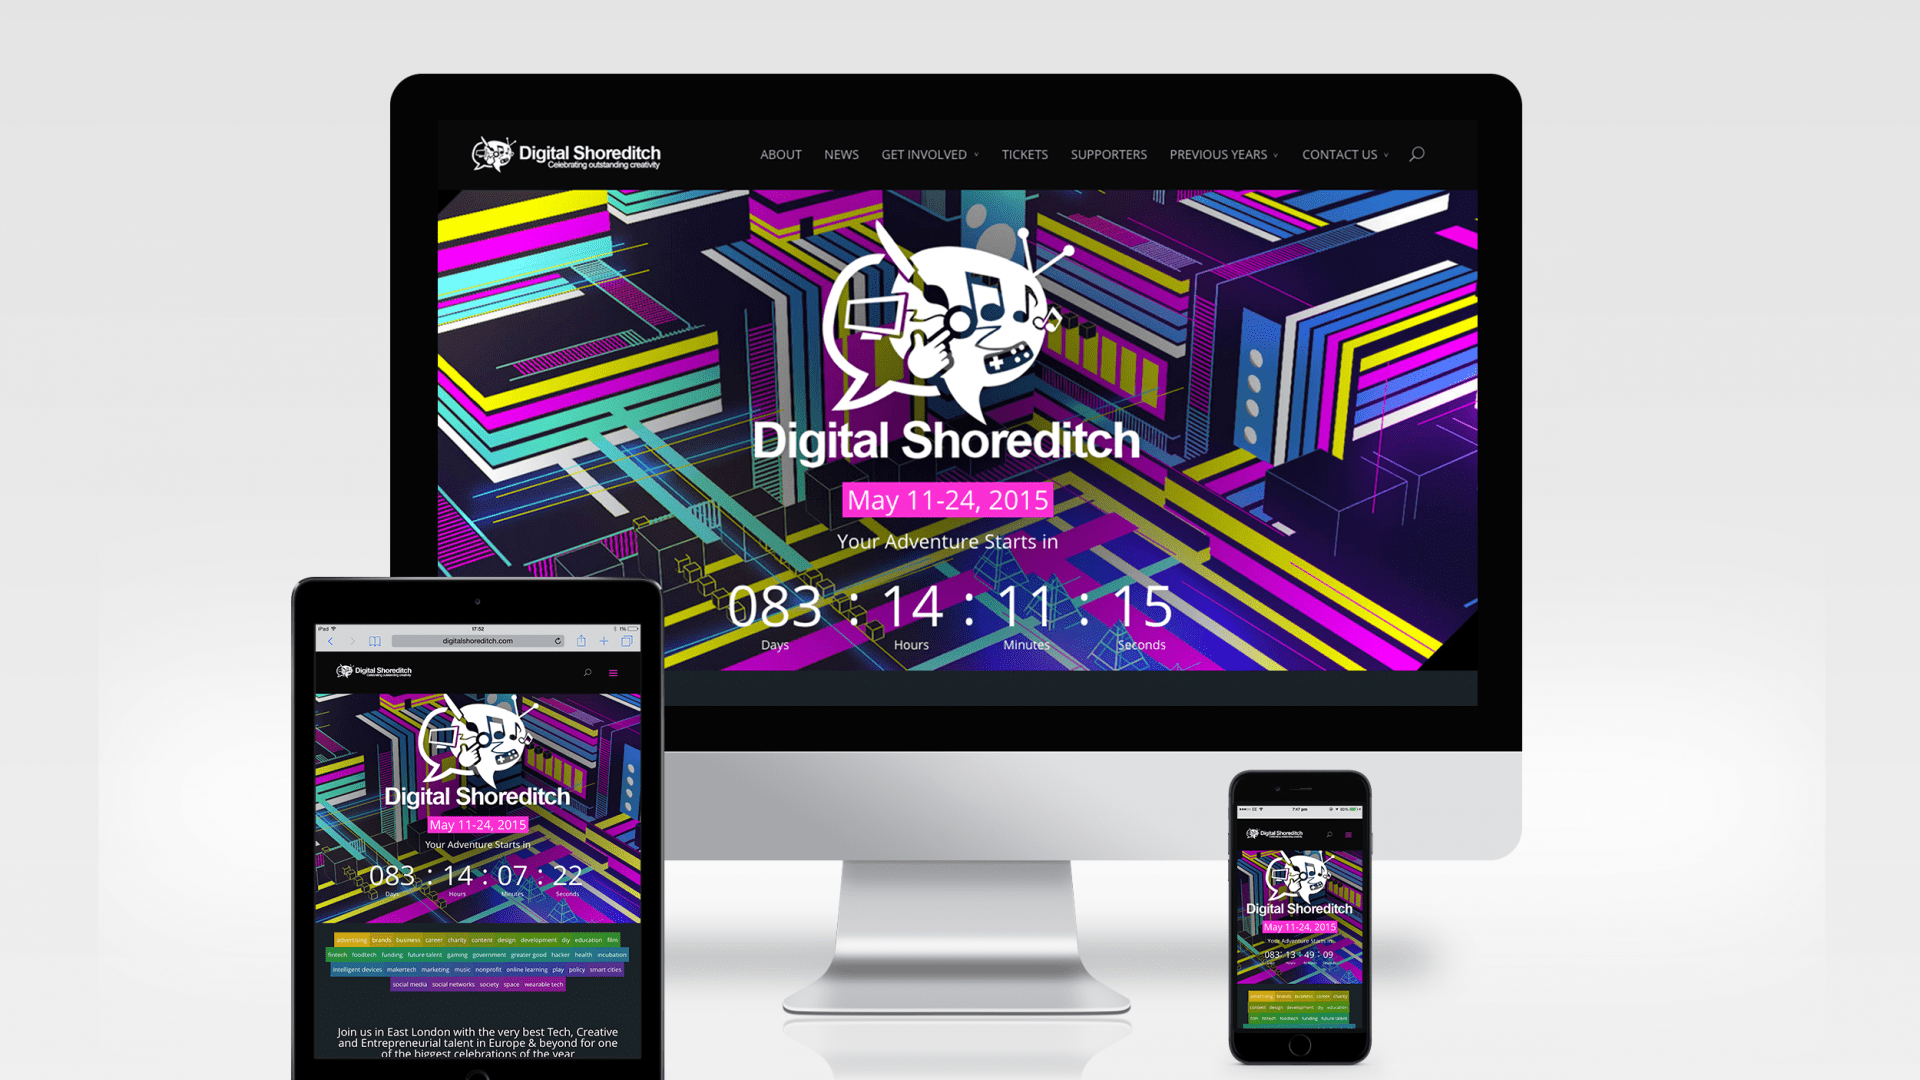 Highlights from Digital Shoreditch 2015